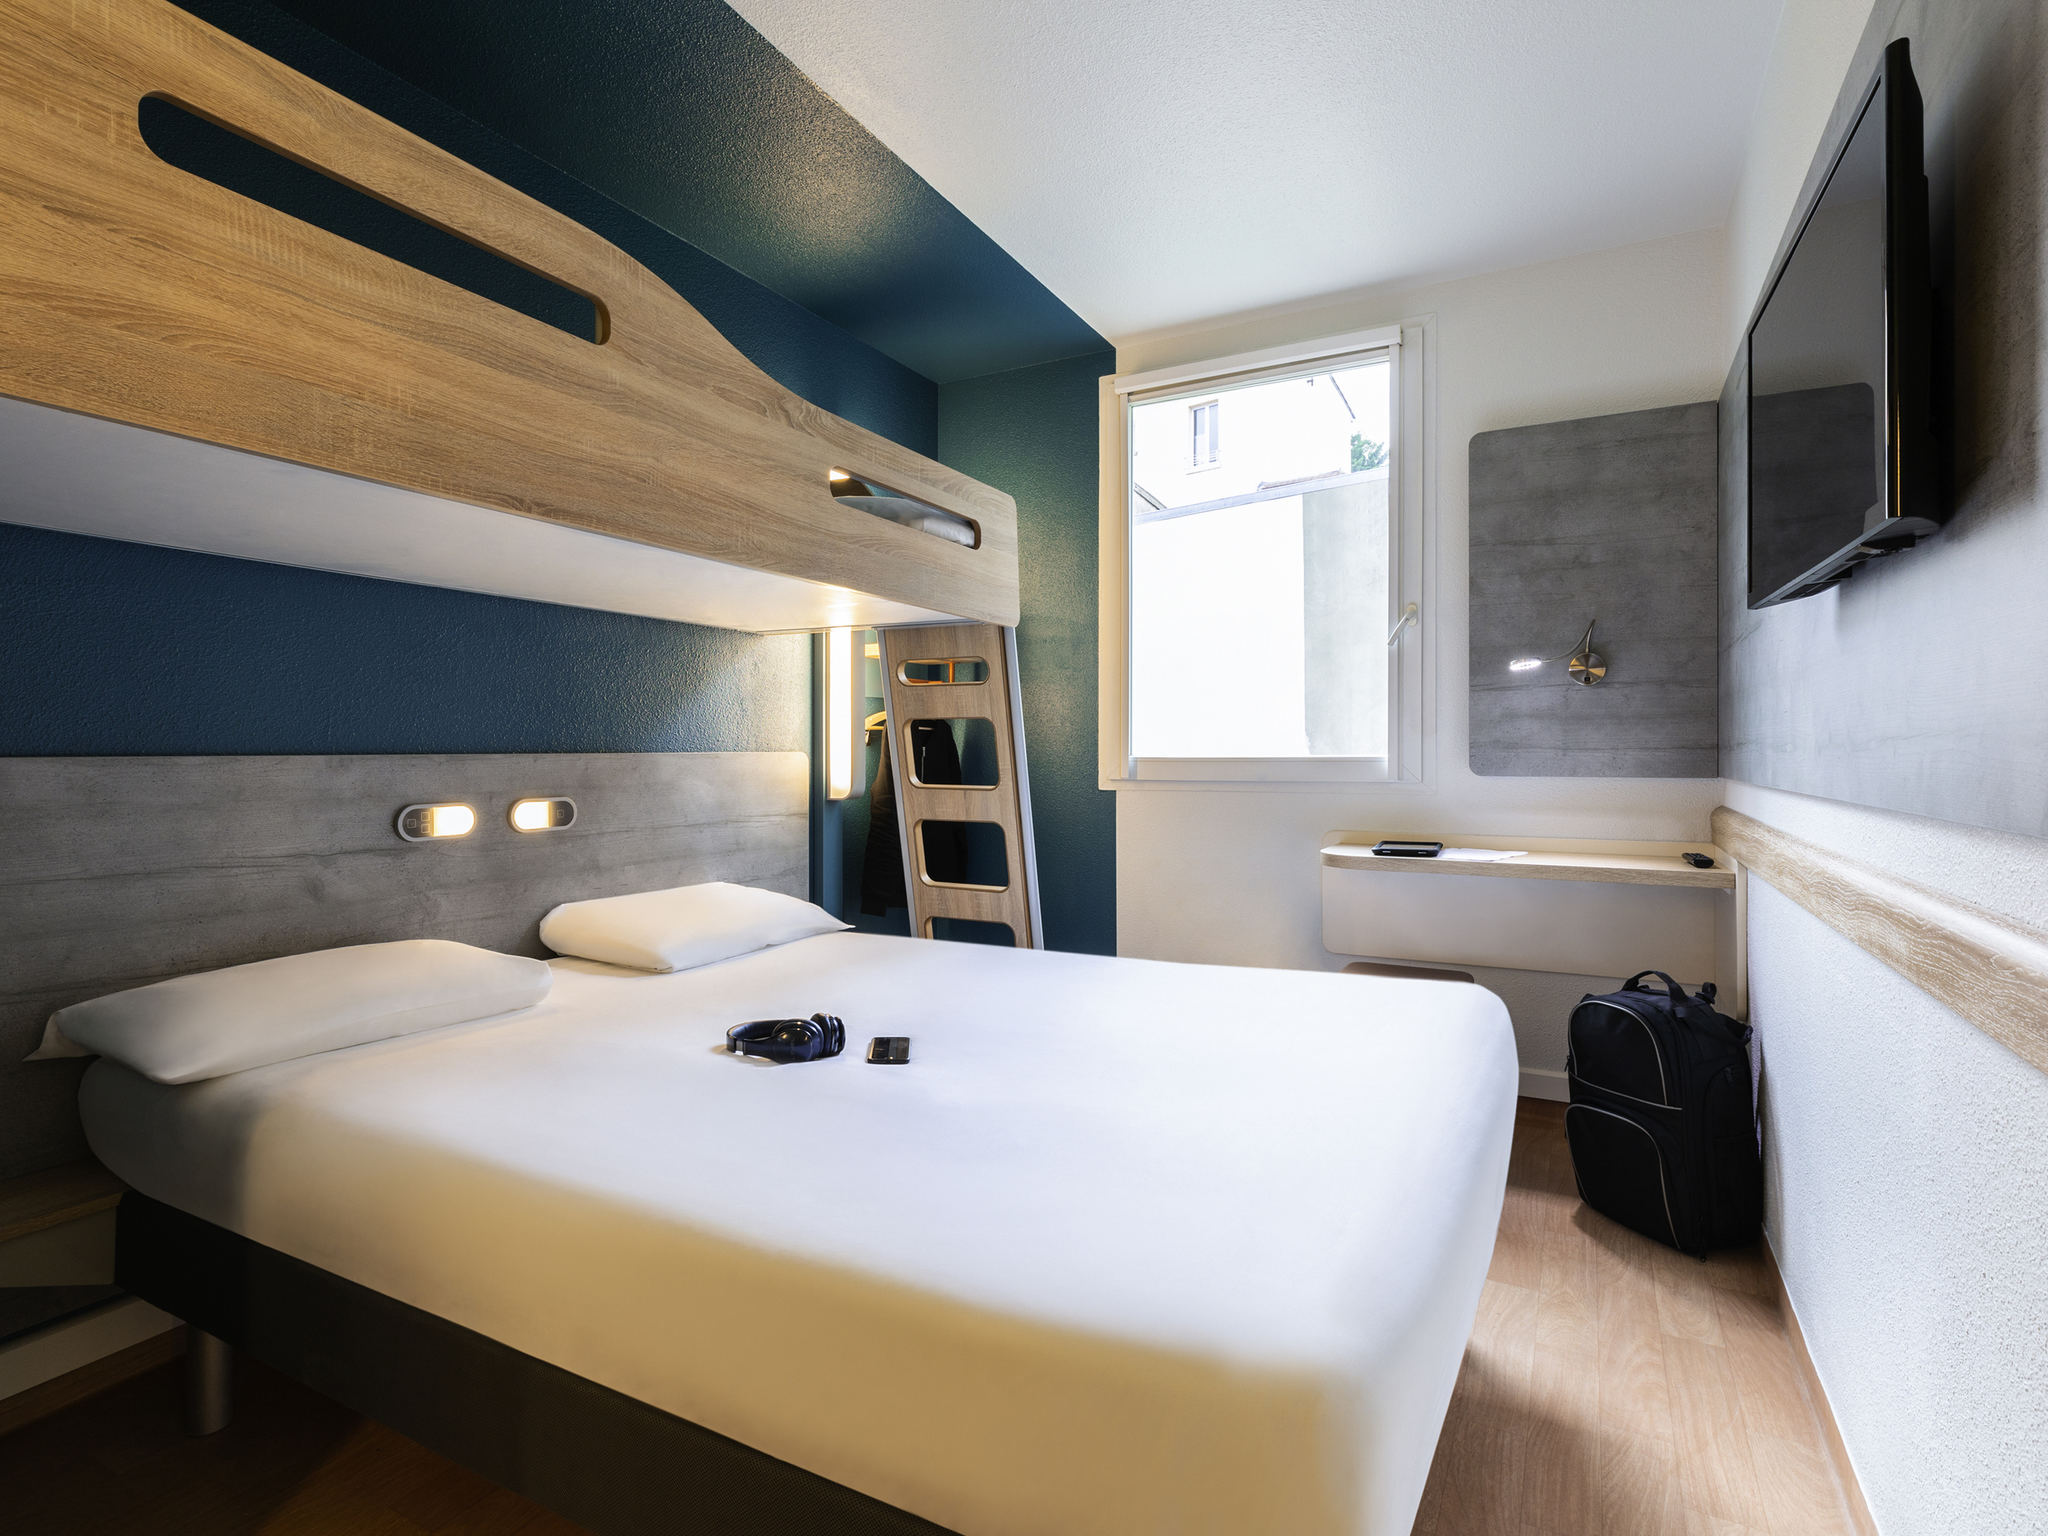 hotel in thillois ibis budget reims thillois. Black Bedroom Furniture Sets. Home Design Ideas